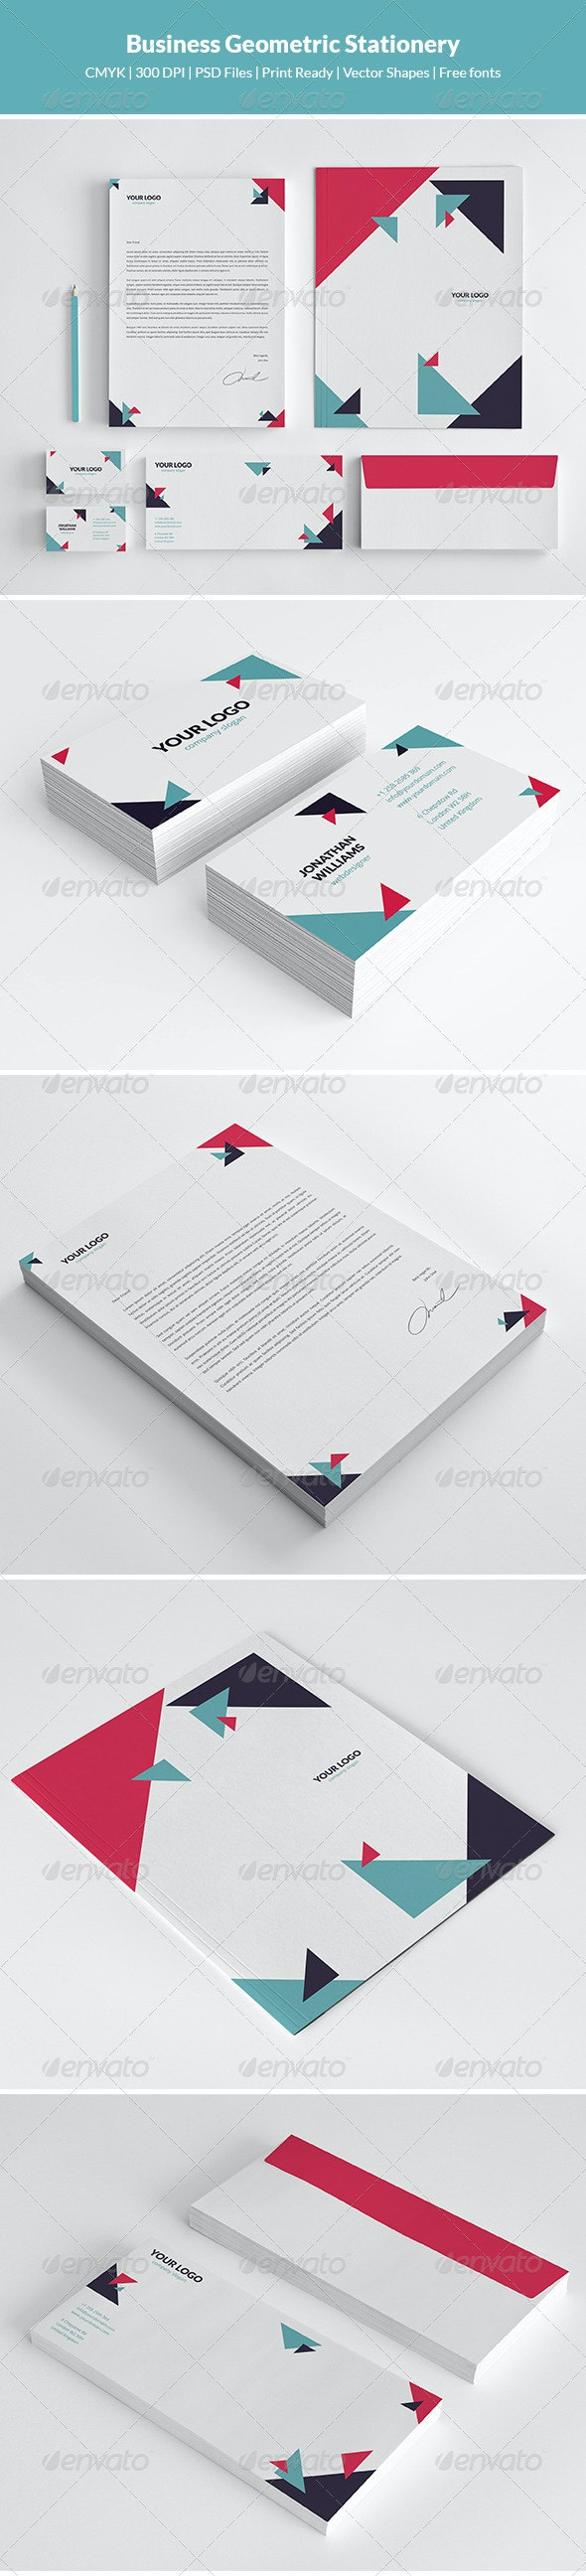 Business Geometric Stationery - Stationery Print Templates